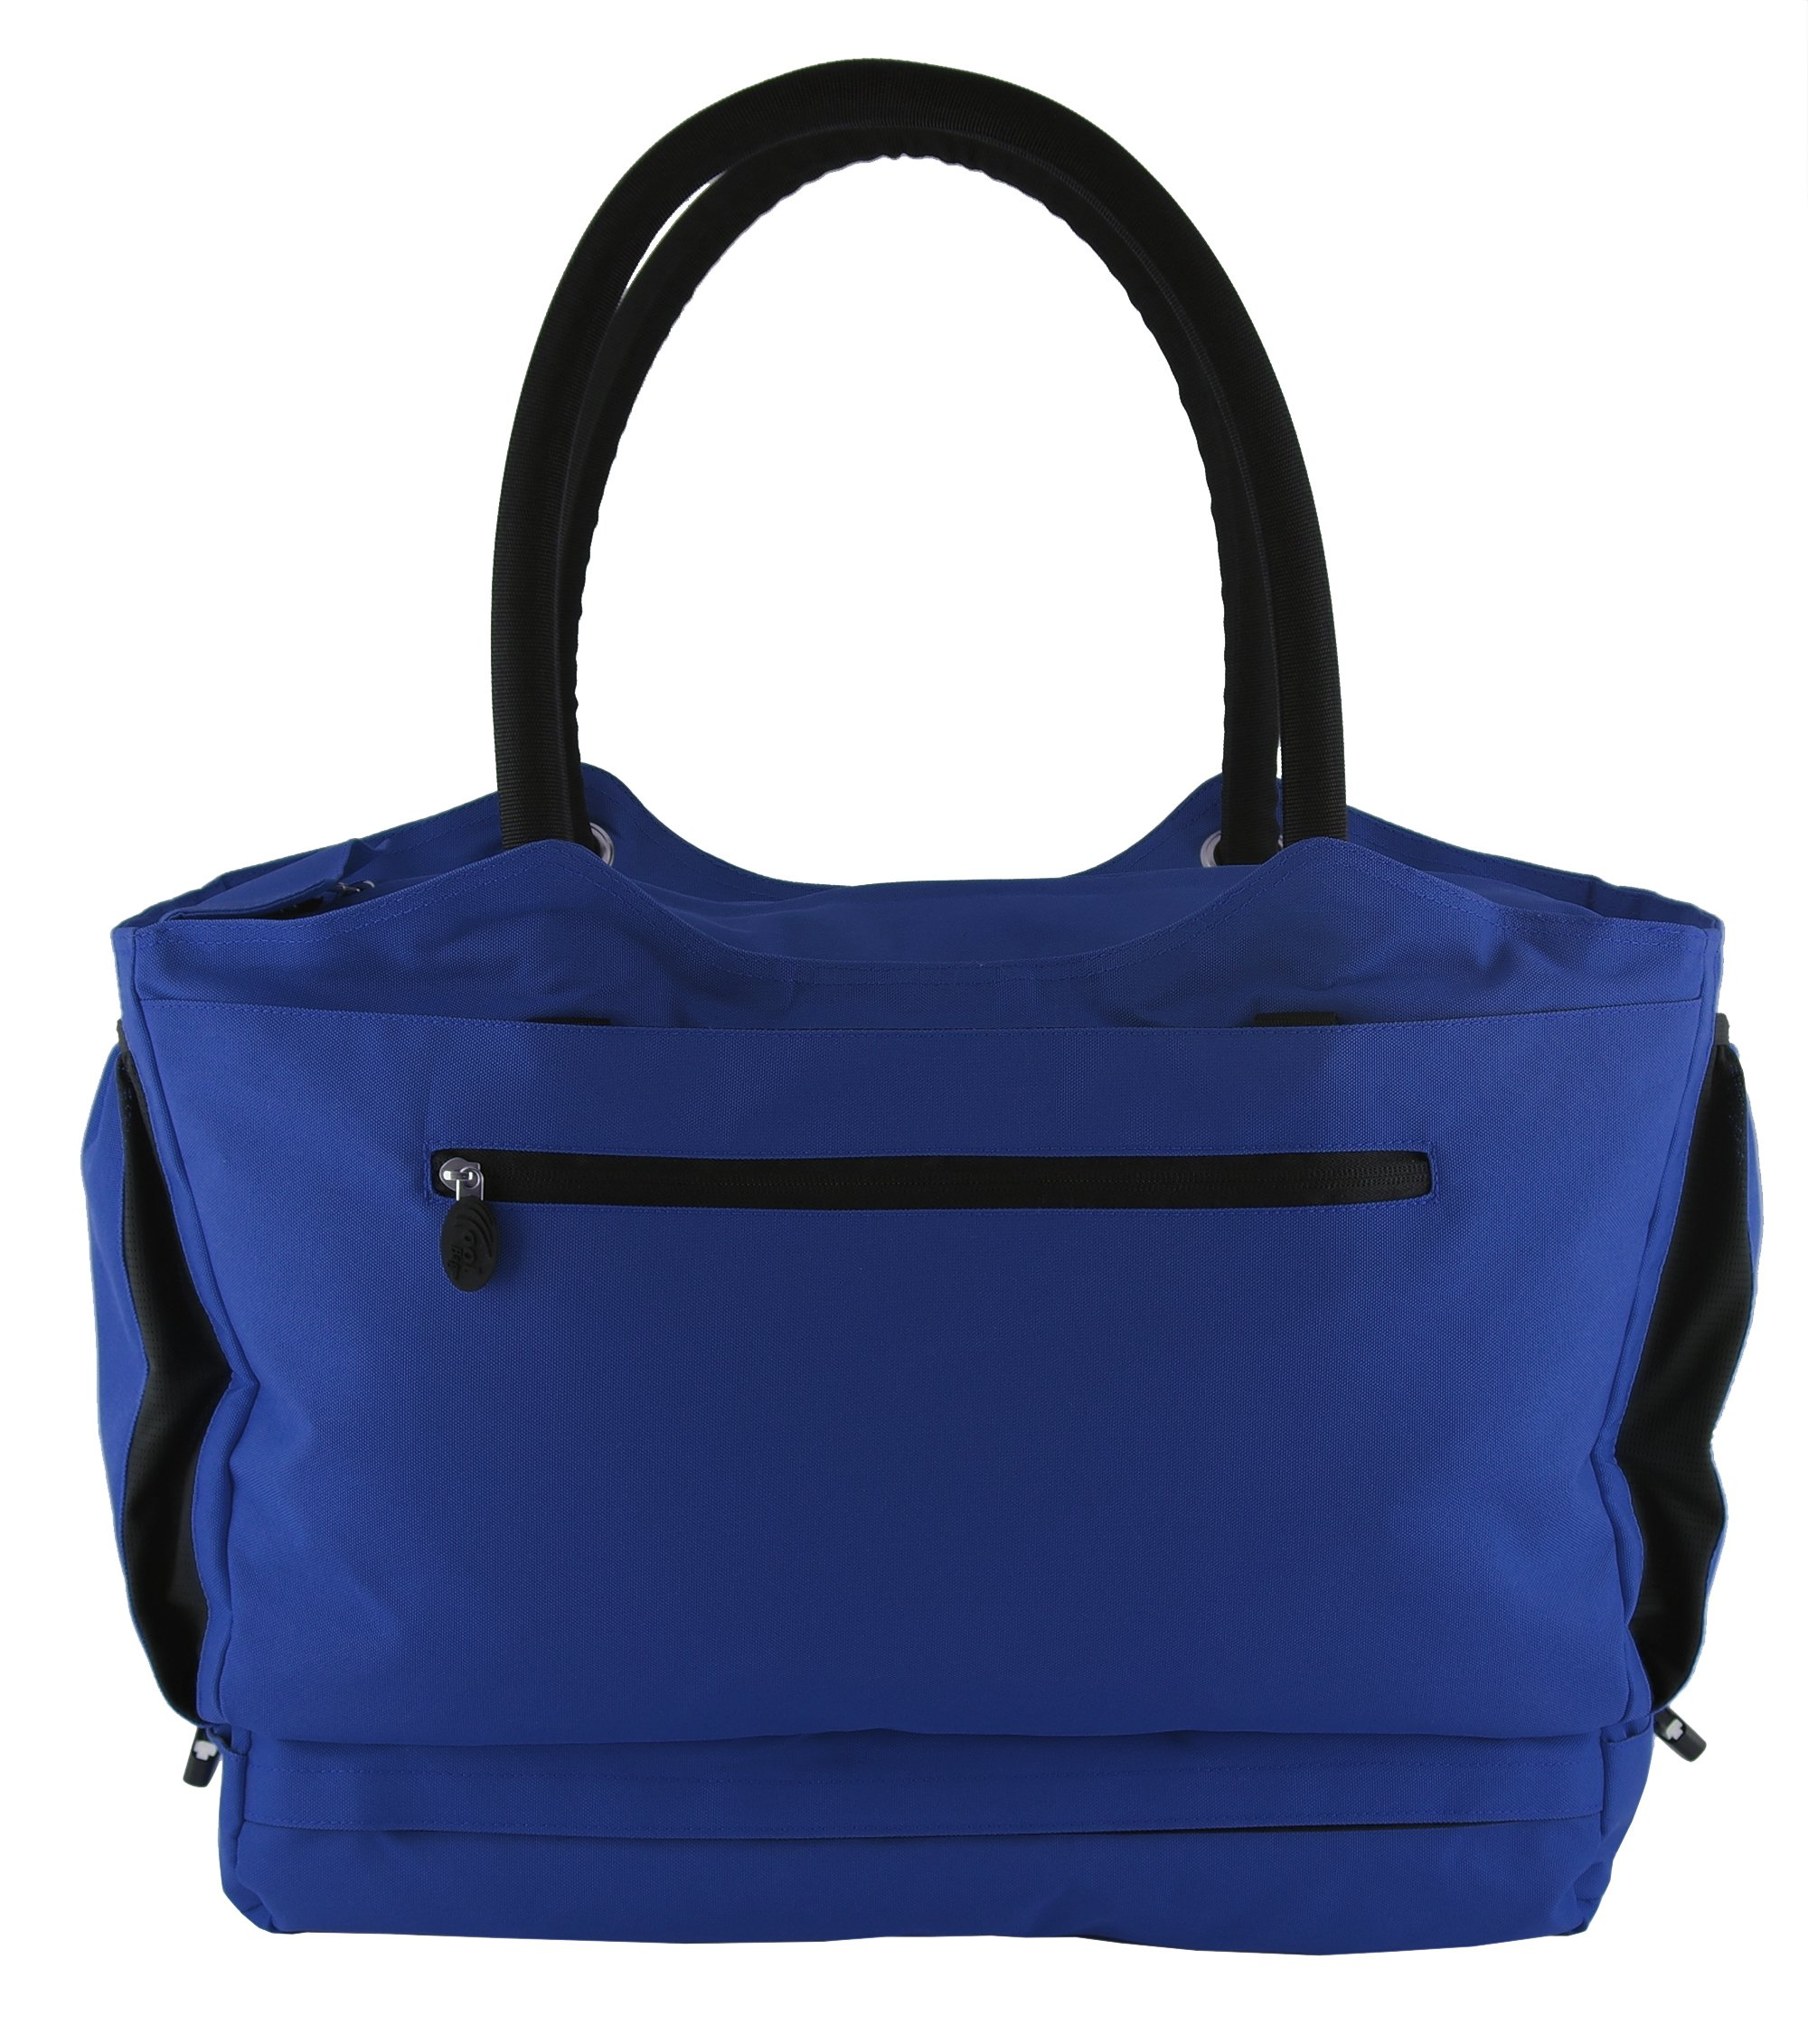 CoolBag Gen 2 Locking Anti-Theft Travel Tote With Insulated Cooler Compartment (Barbados Blue)